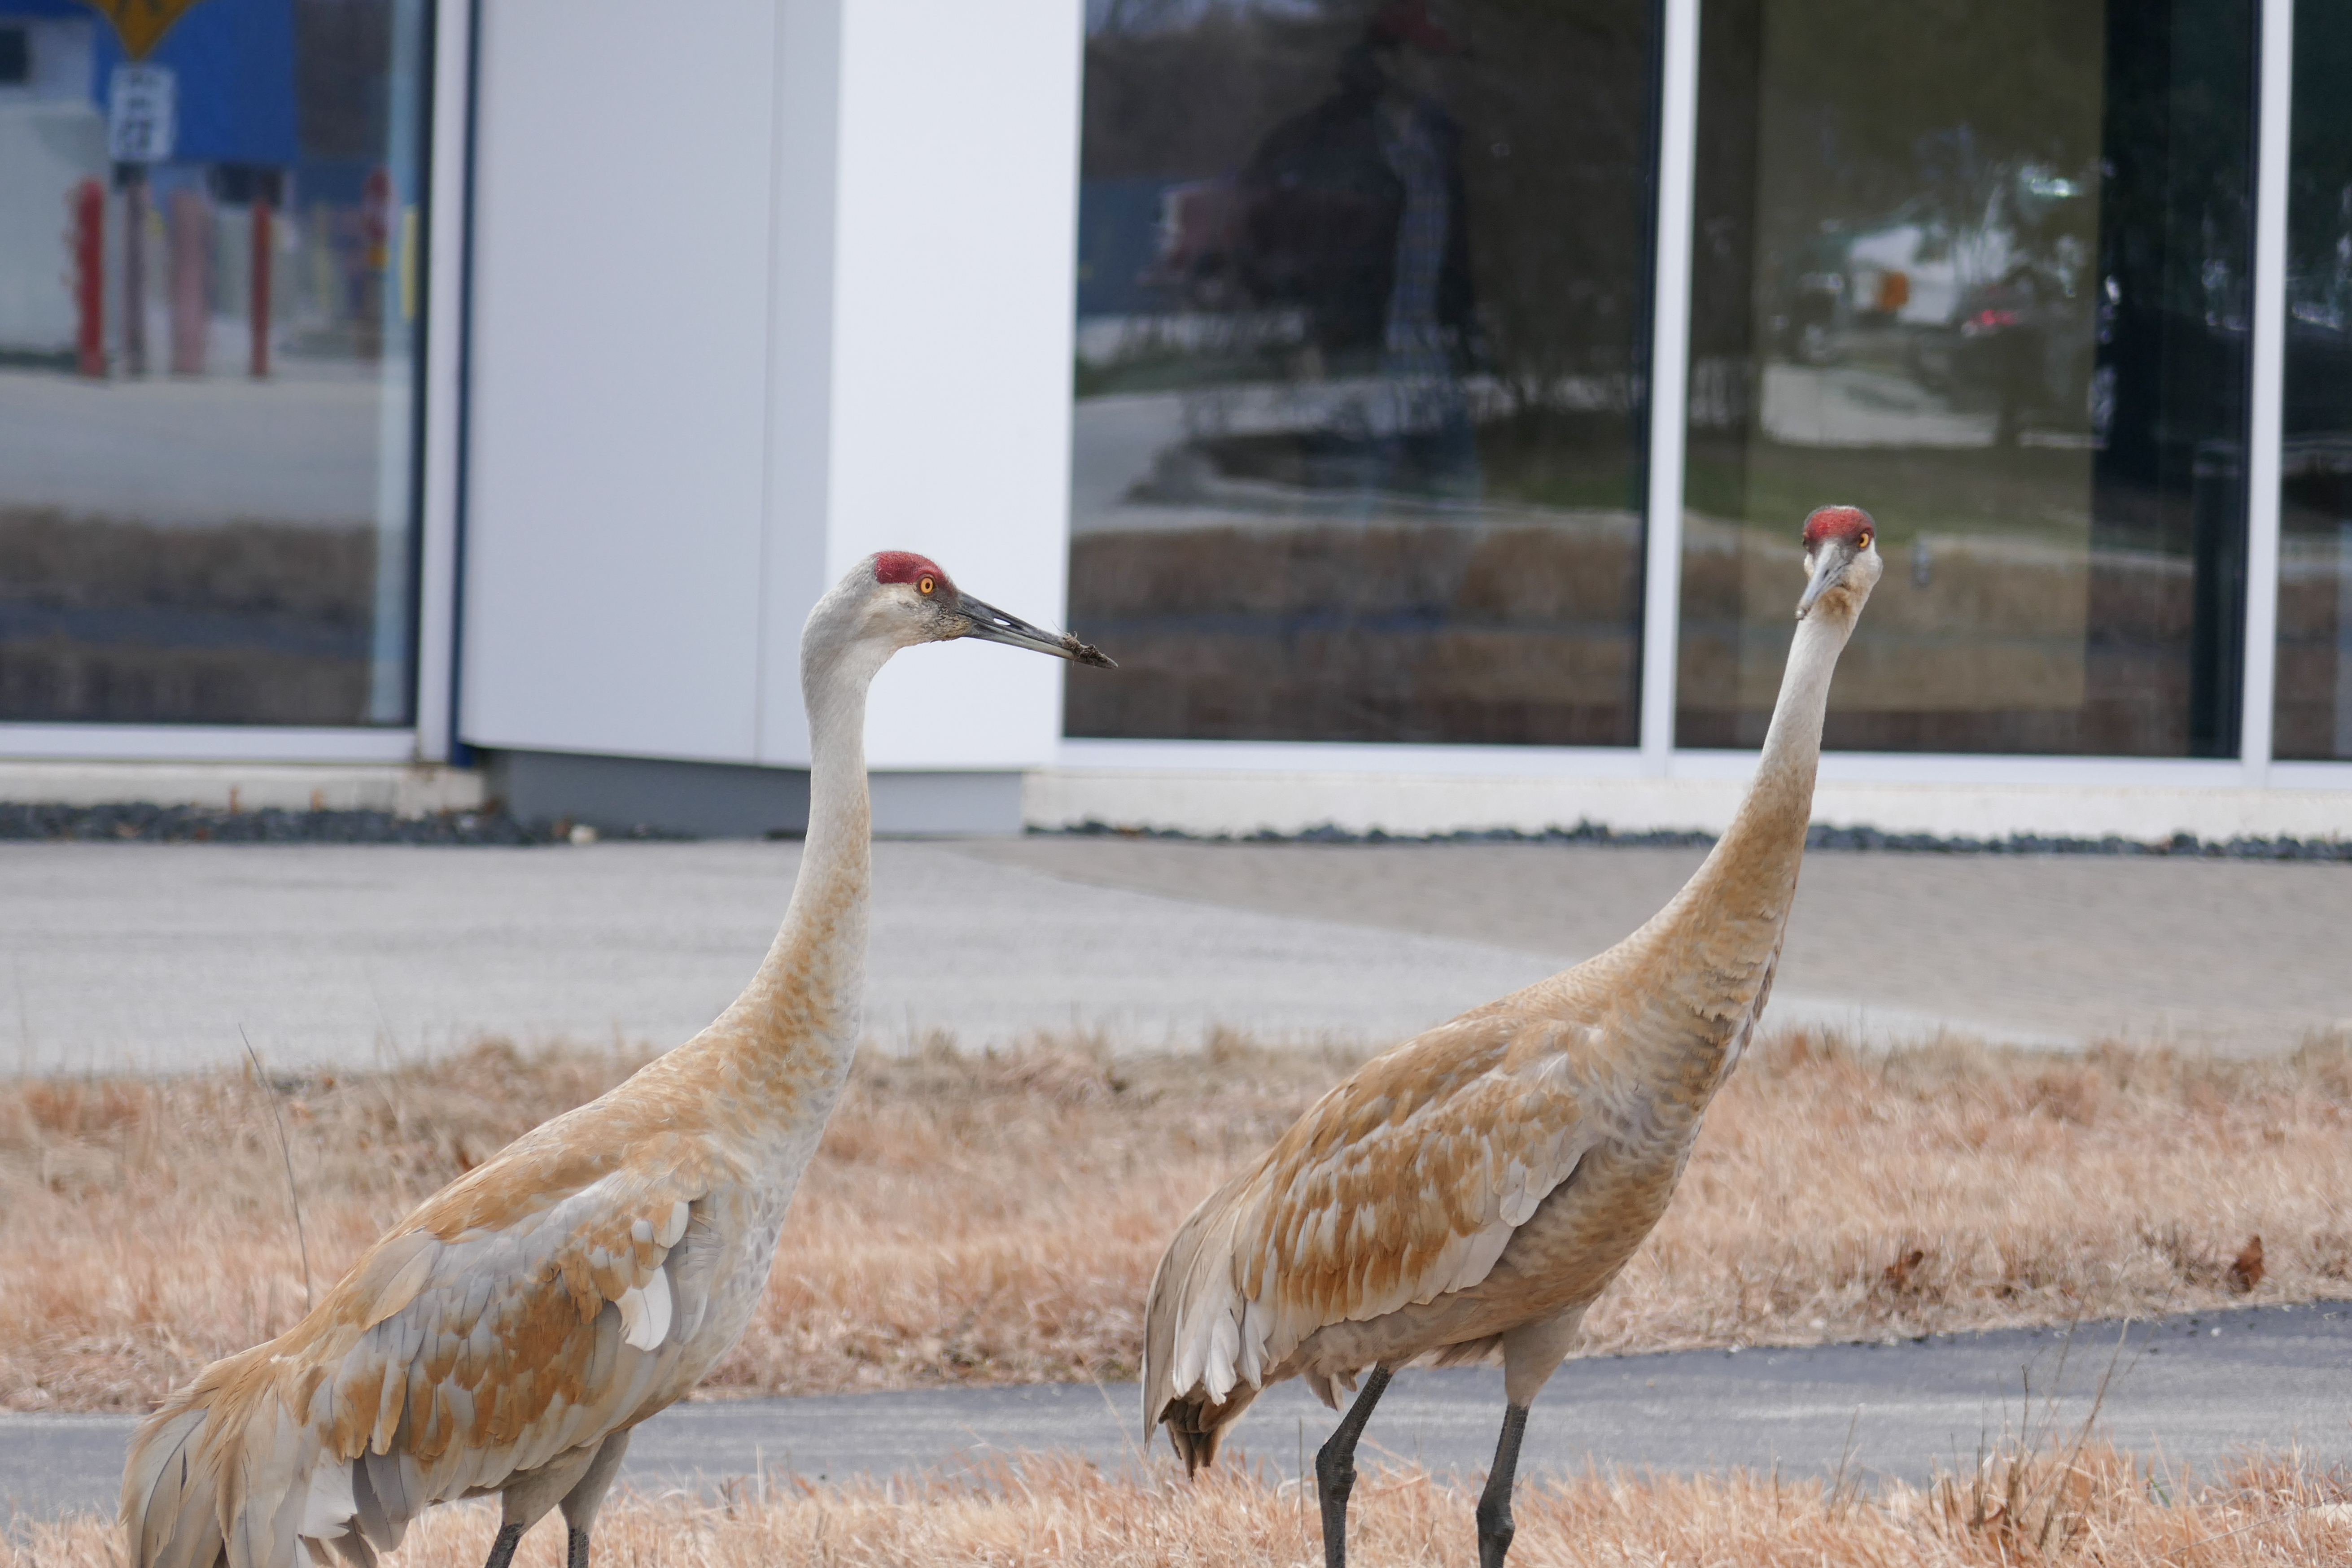 (1/2) Sandhill cranes were spotted over by the IARC building Thursday, April 5. Photo: Leticia Shaddix, nature, wildlife, animal, bird, sandhill crane